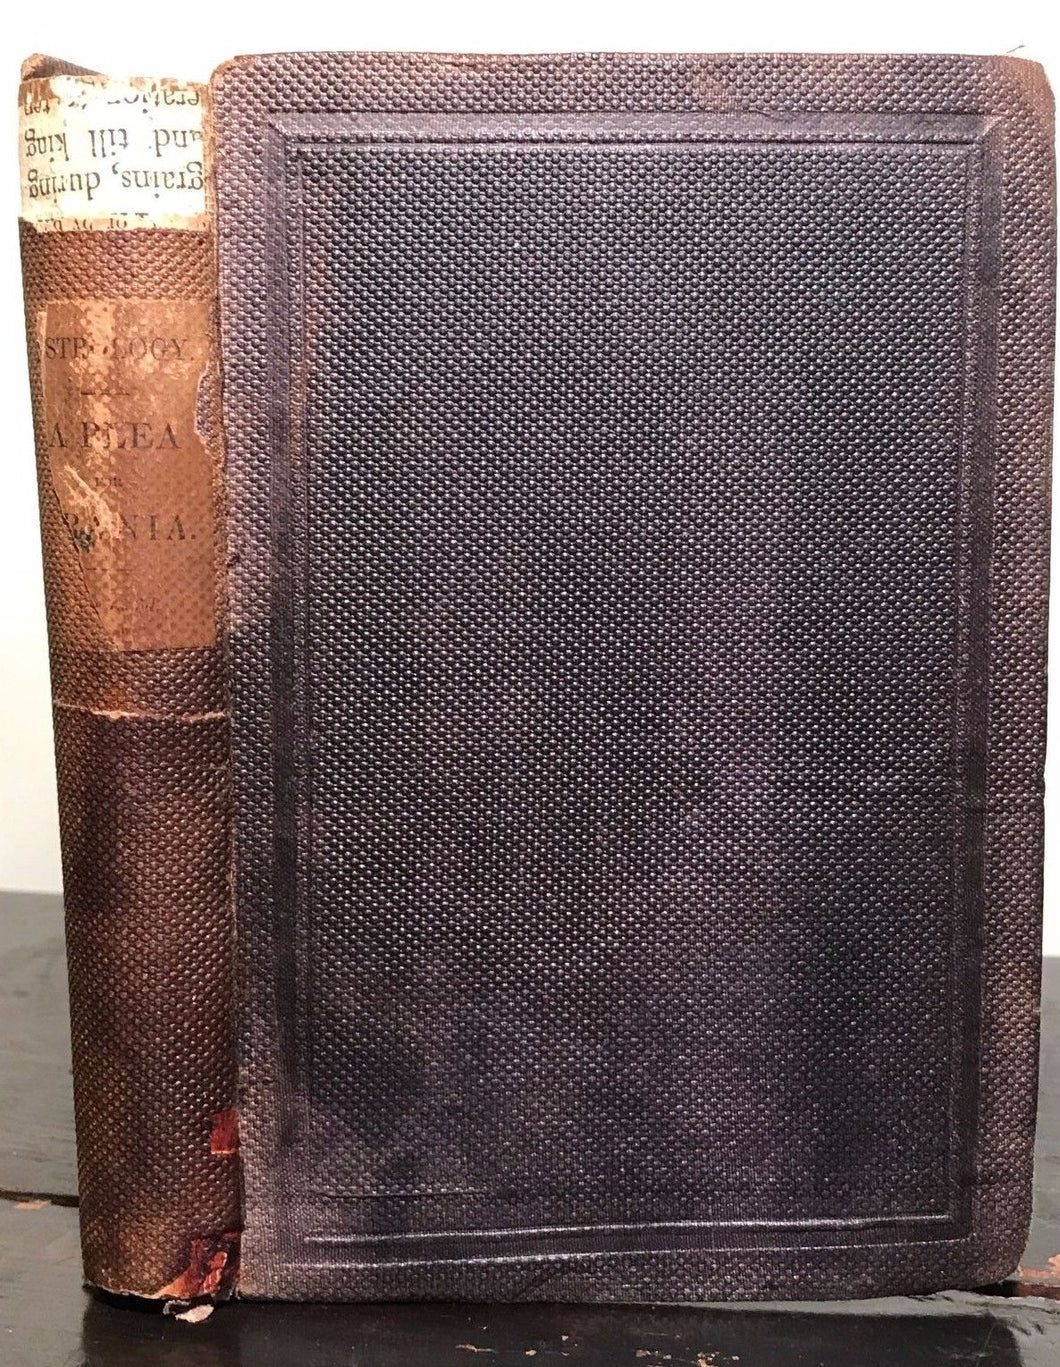 A PLEA FOR URANIA: CELESTIAL PHILOSPHY; C. Cooke 1st/1st 1854, ASTROLOGY OCCULT